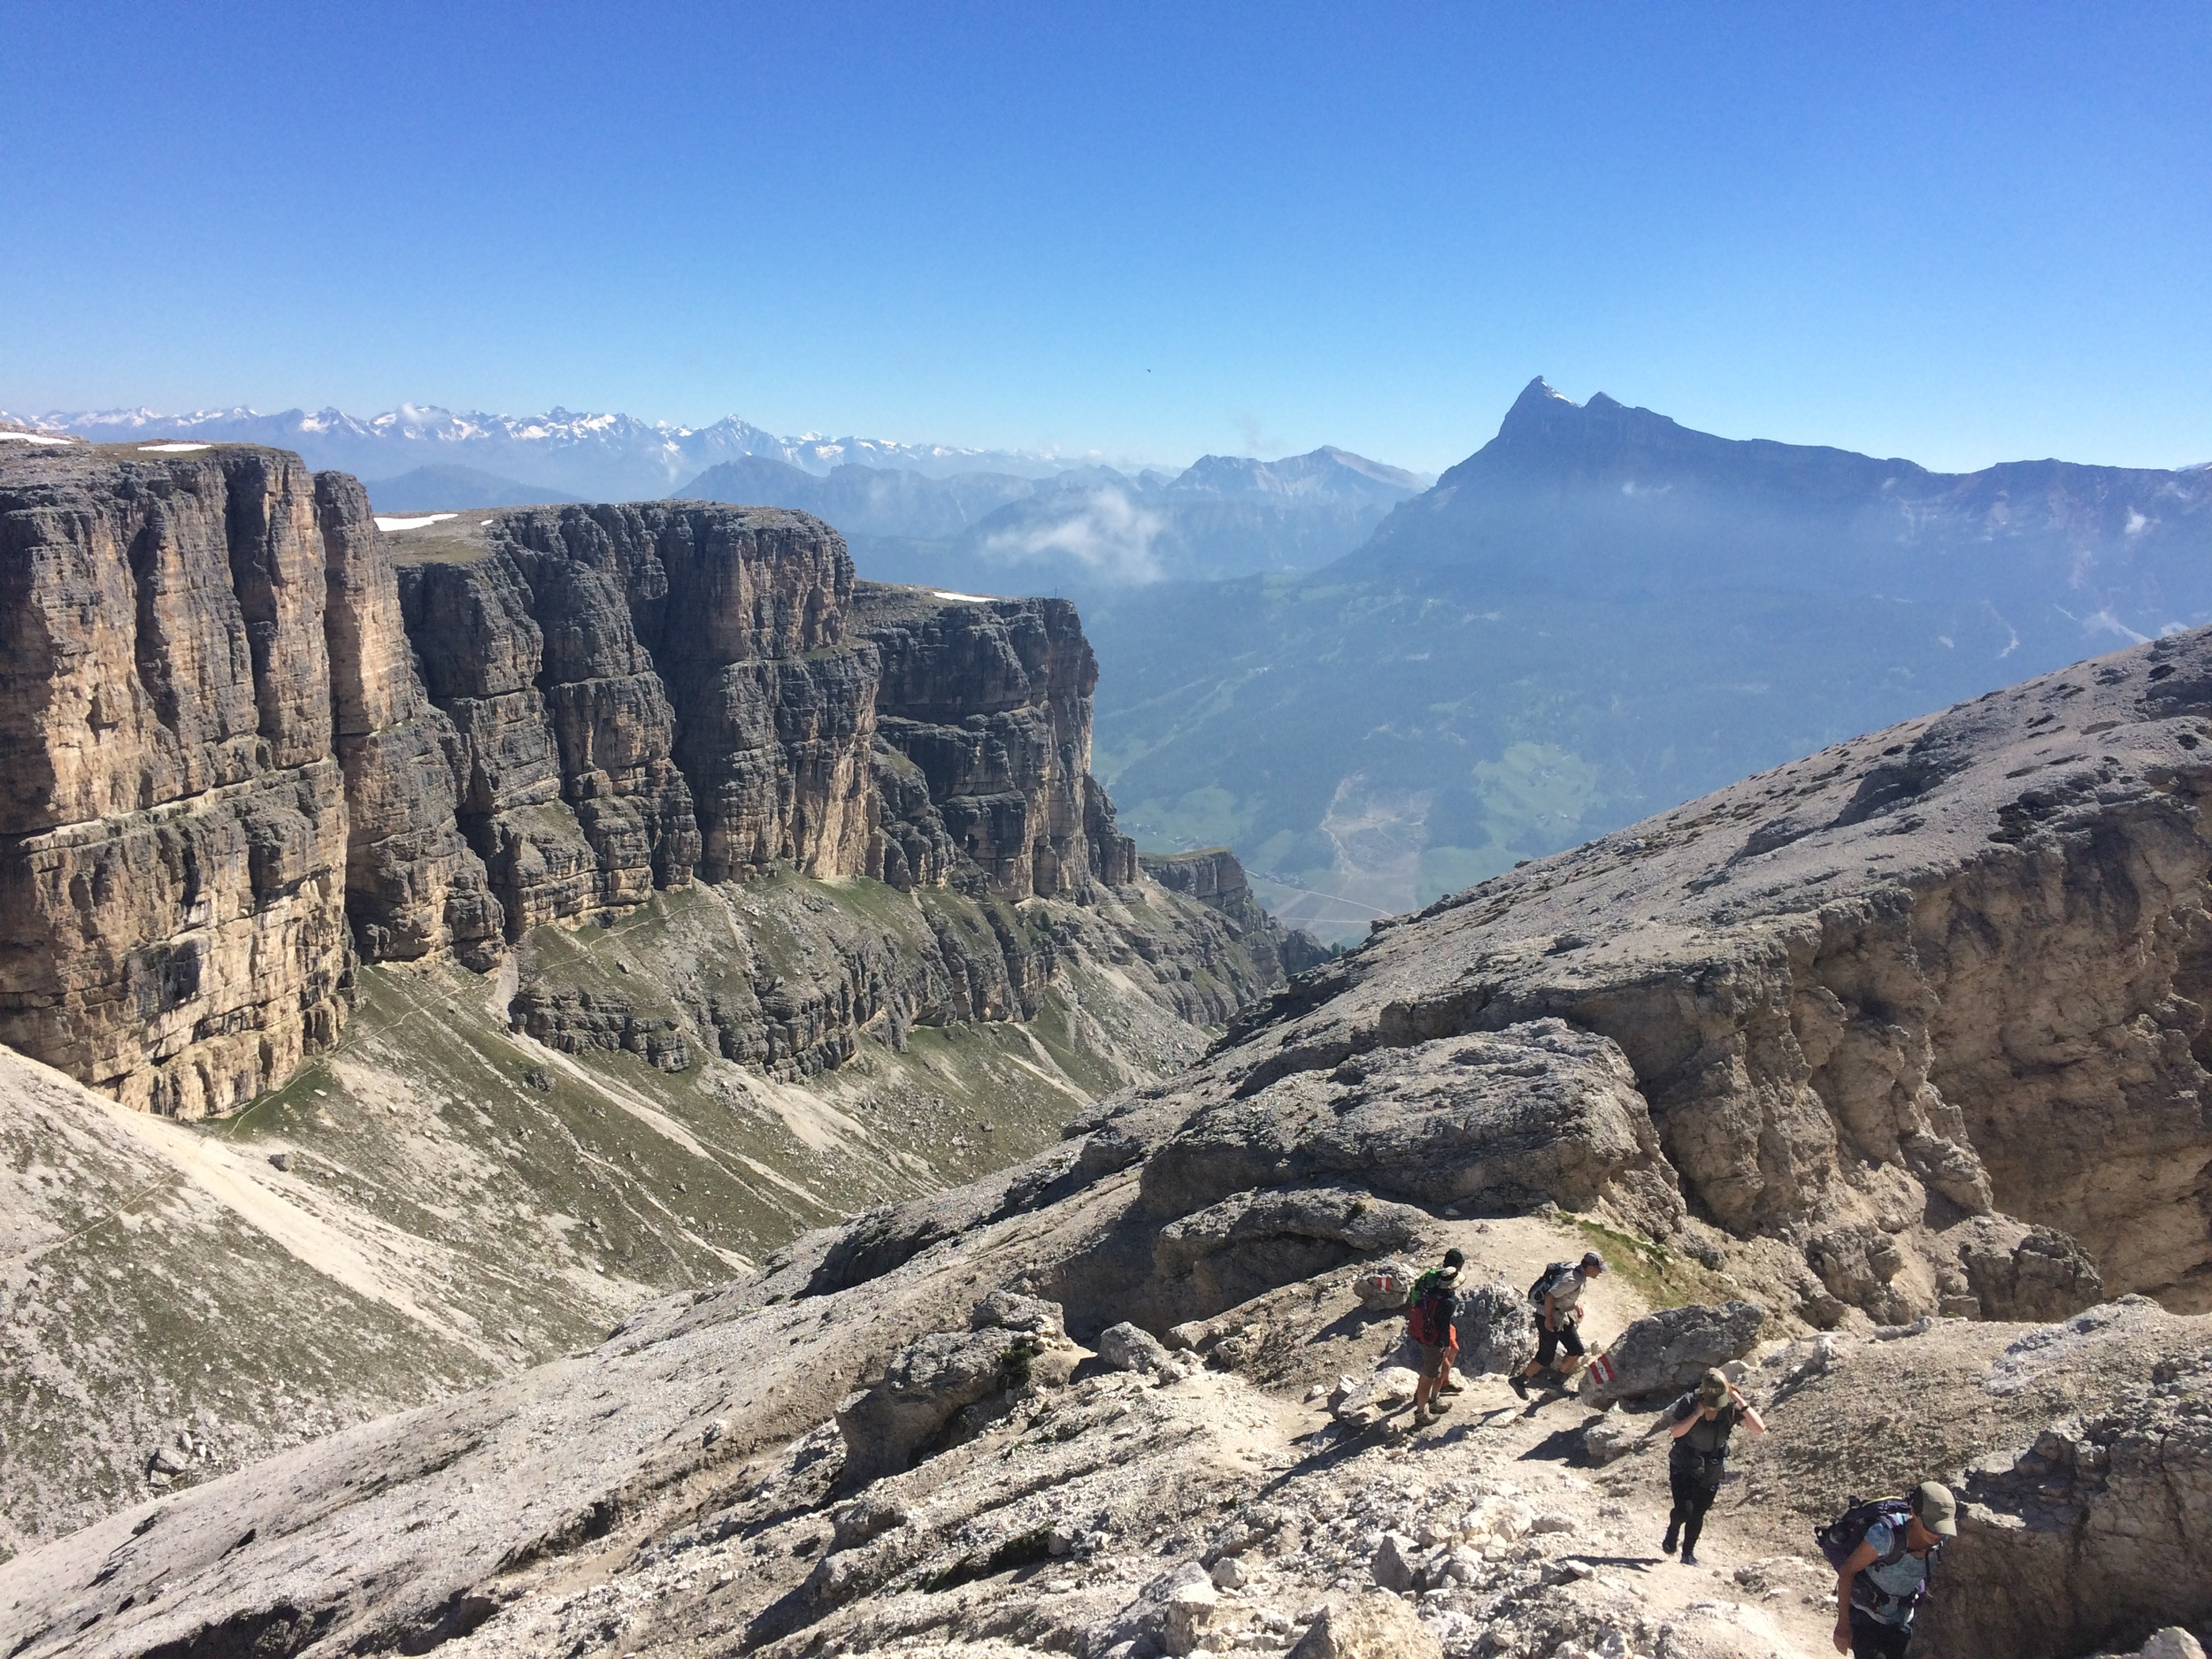 Welcome to the Dolomites! This is the view into Austria from the top of the Sassongher.